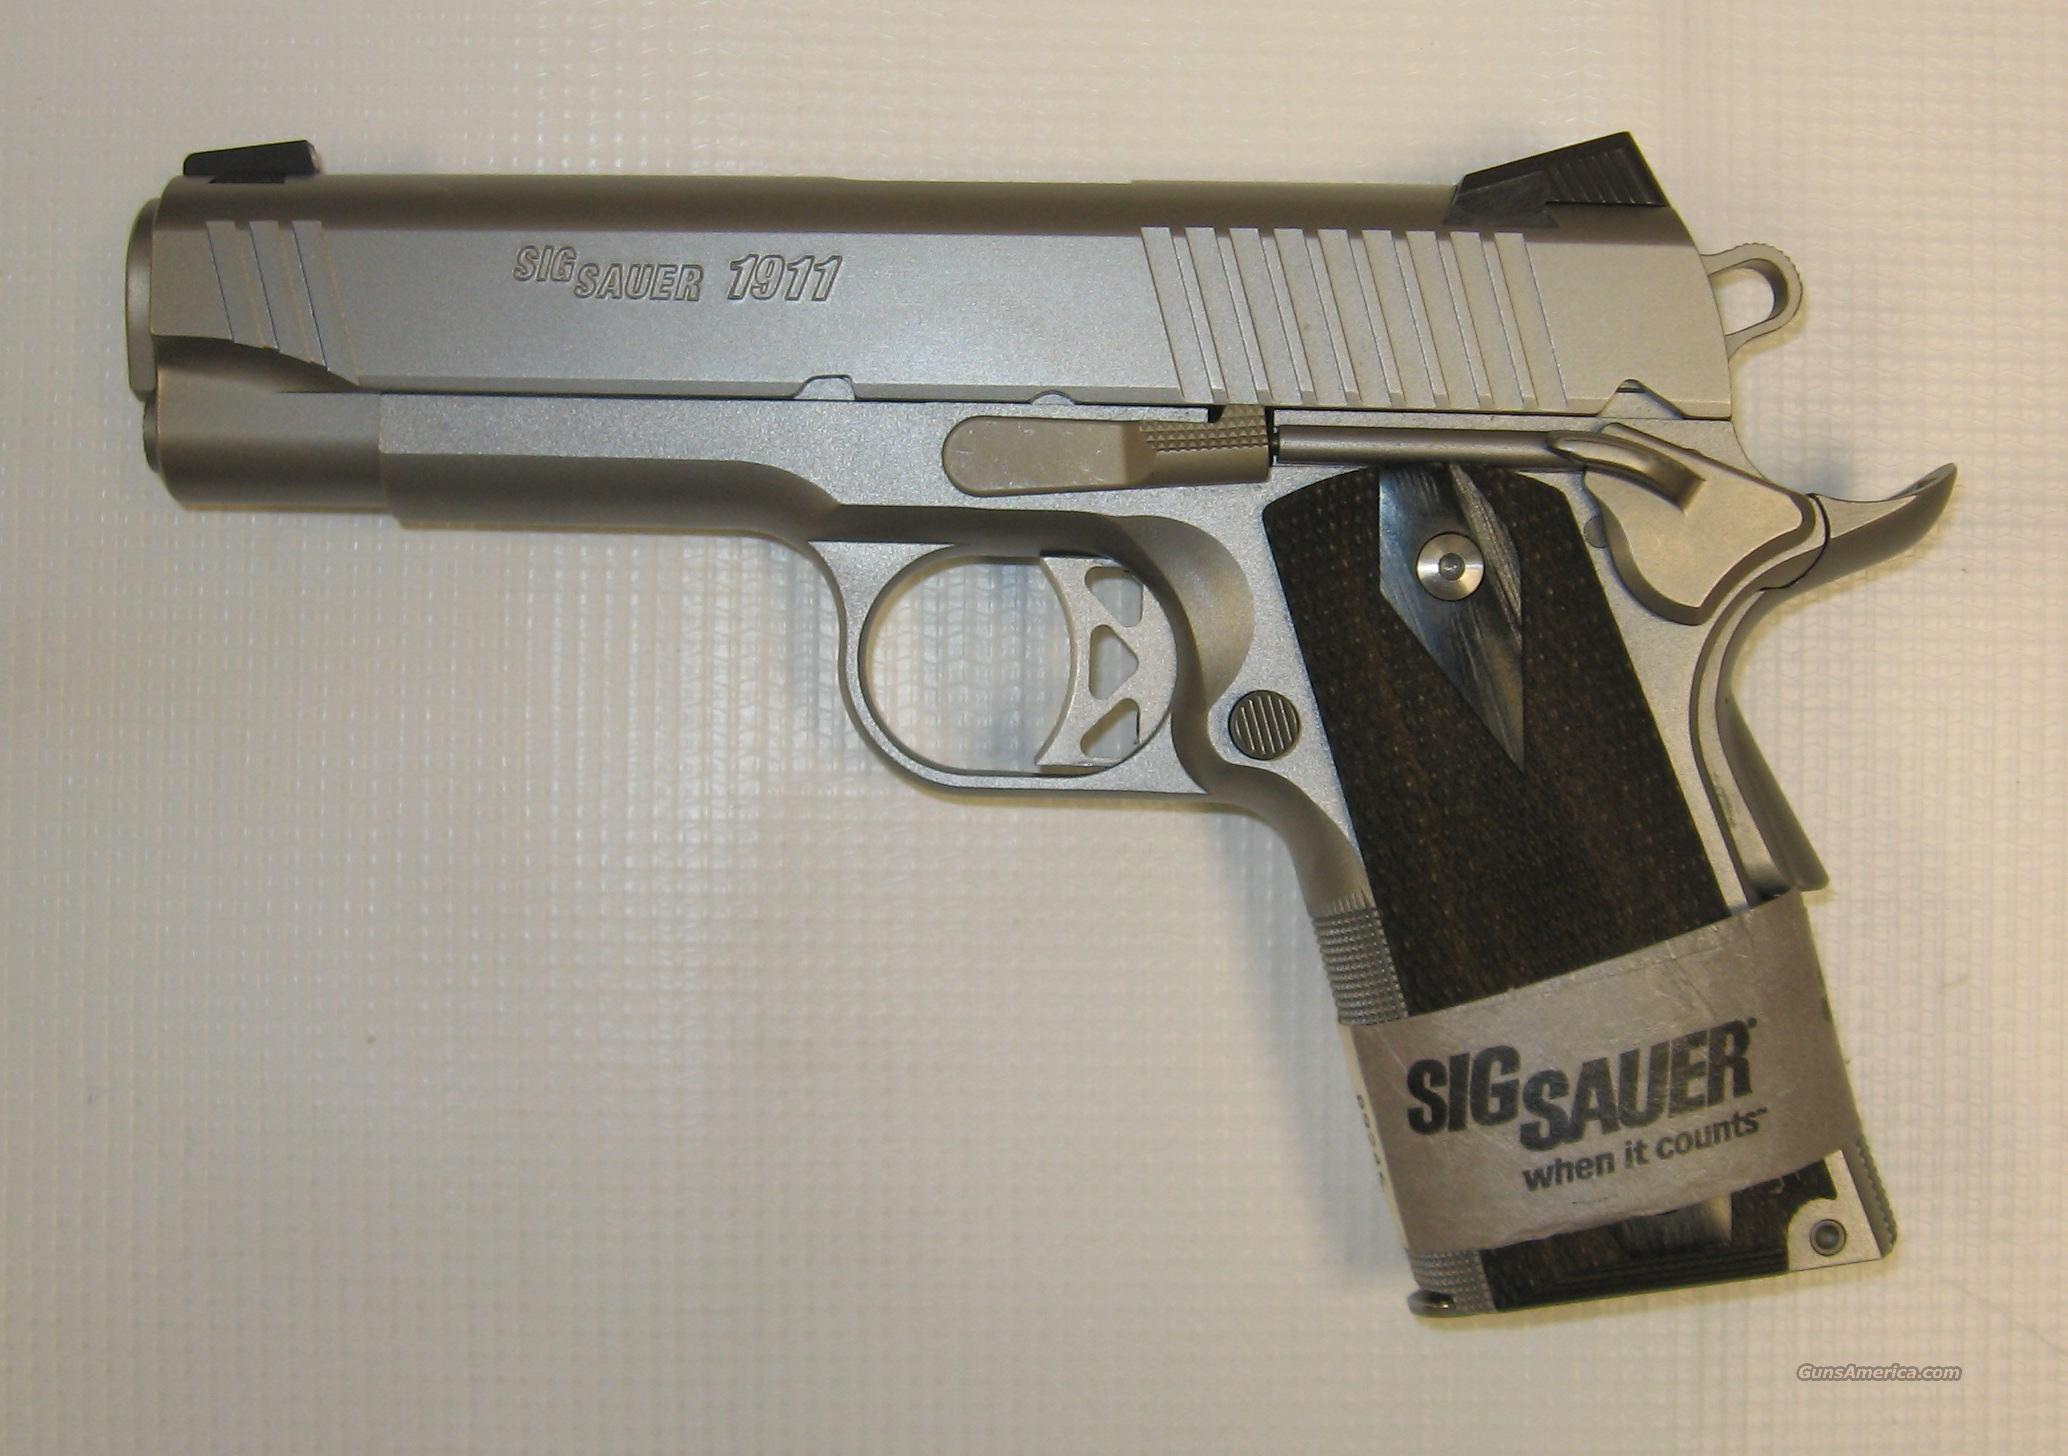 Sig Sauer 1911 Traditional Compact W/ Nightsights  Guns > Pistols > Sig - Sauer/Sigarms Pistols > 1911